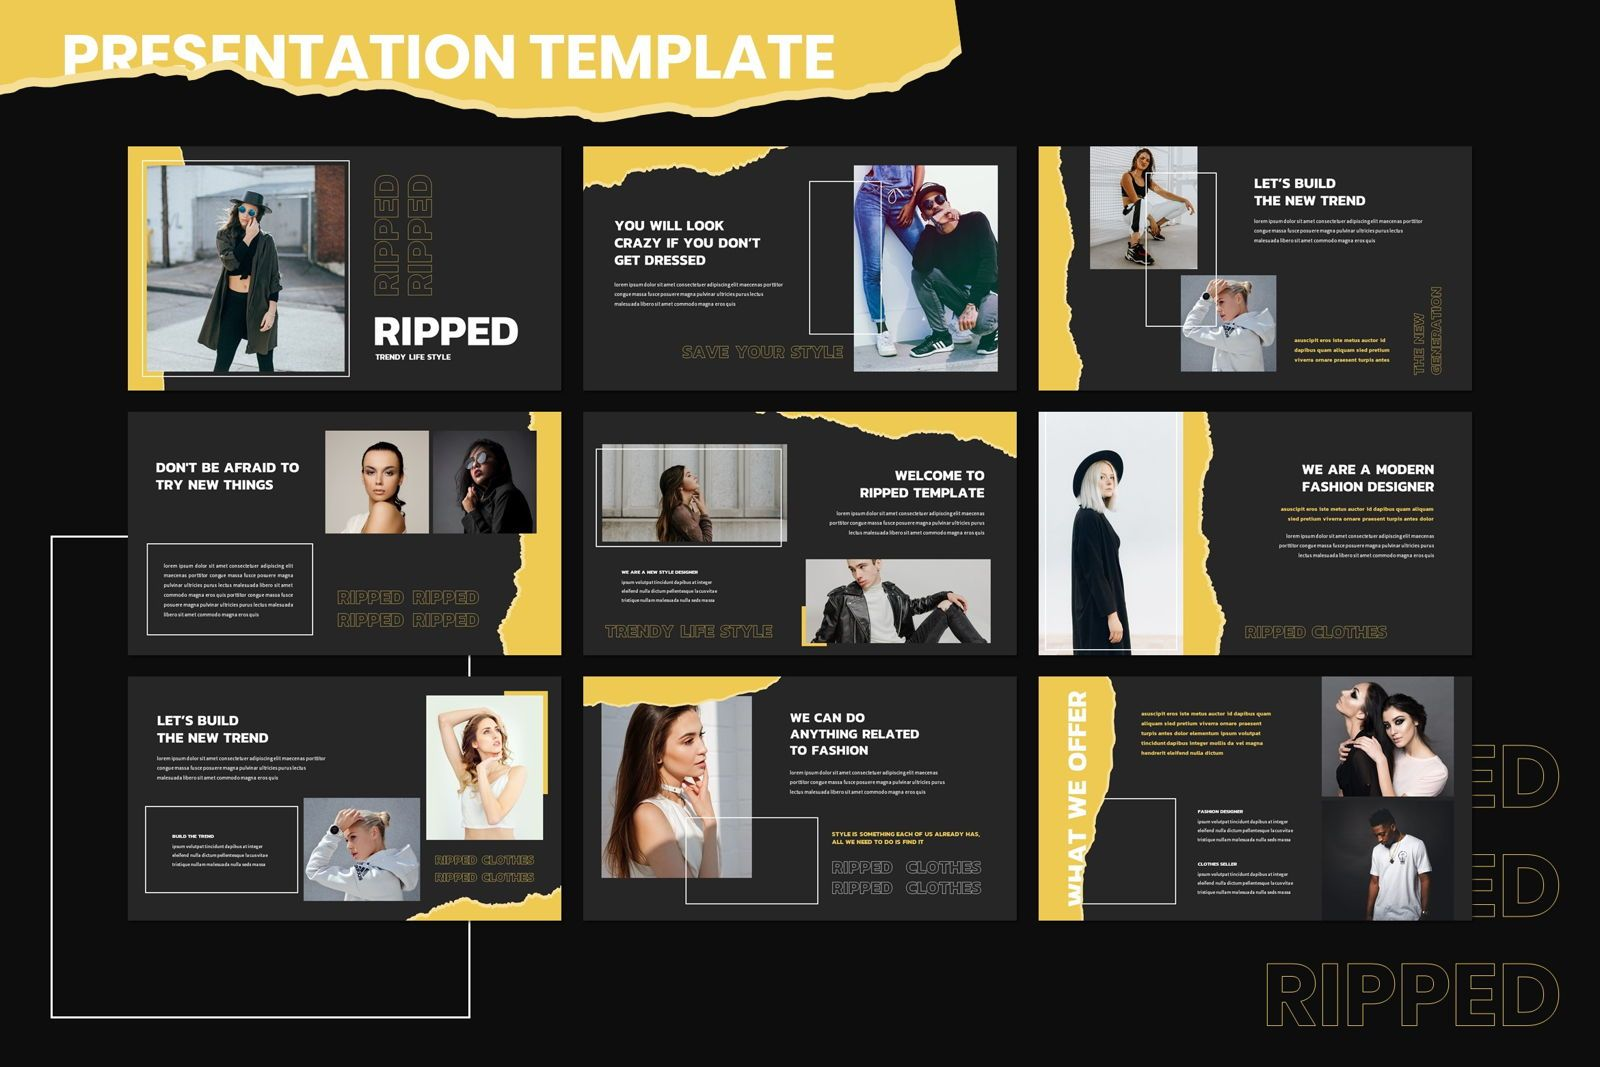 Riped - Powerpoint Template, Slide 2, 07996, Presentation Templates — PoweredTemplate.com